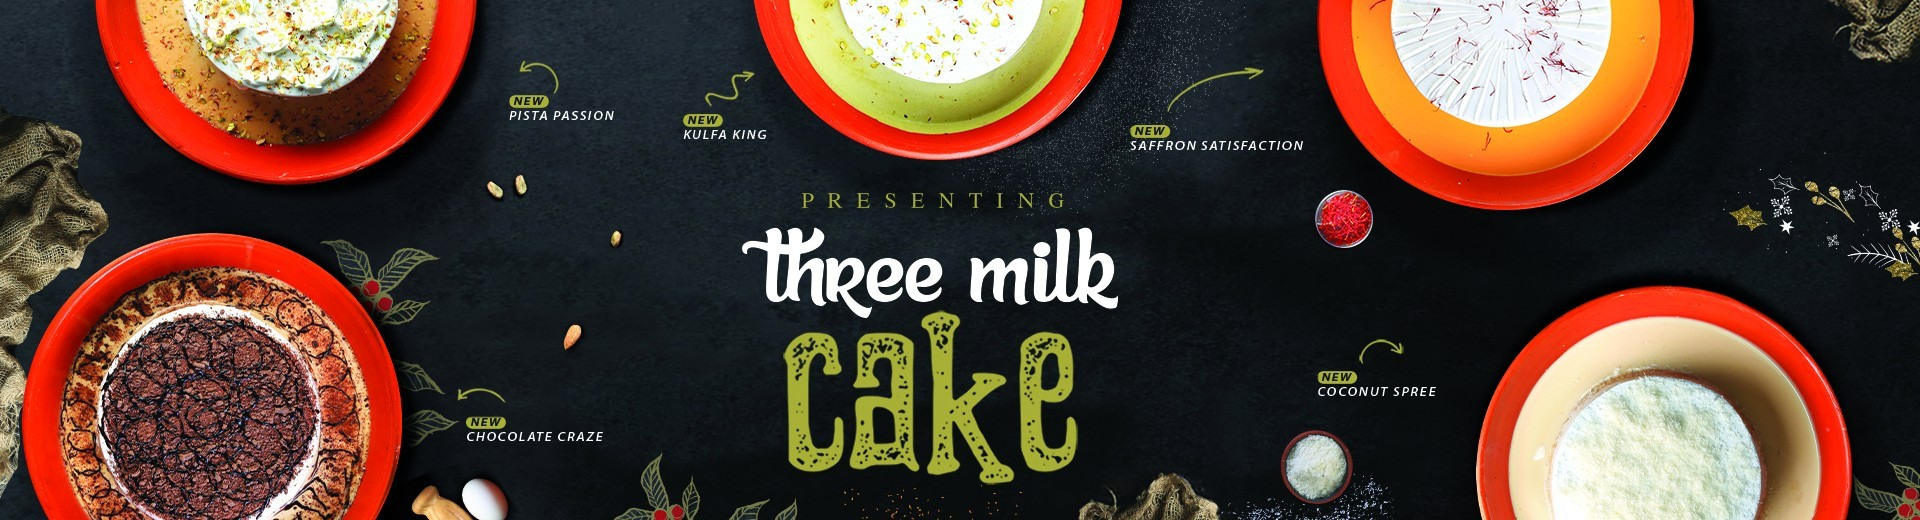 Three Milk Cake